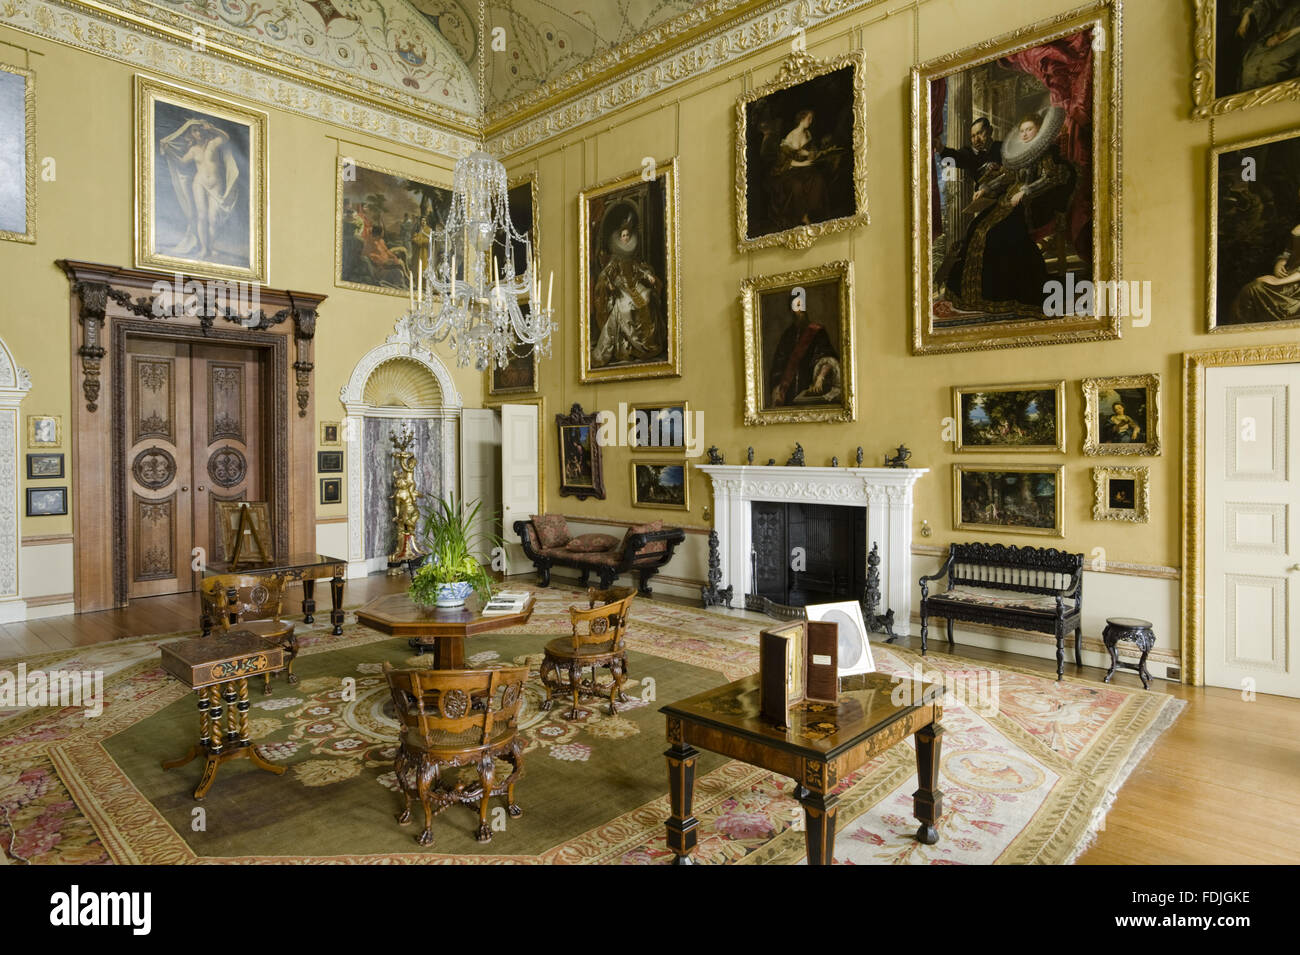 The Saloon at Kingston Lacy, Dorset. This room was originally the ...